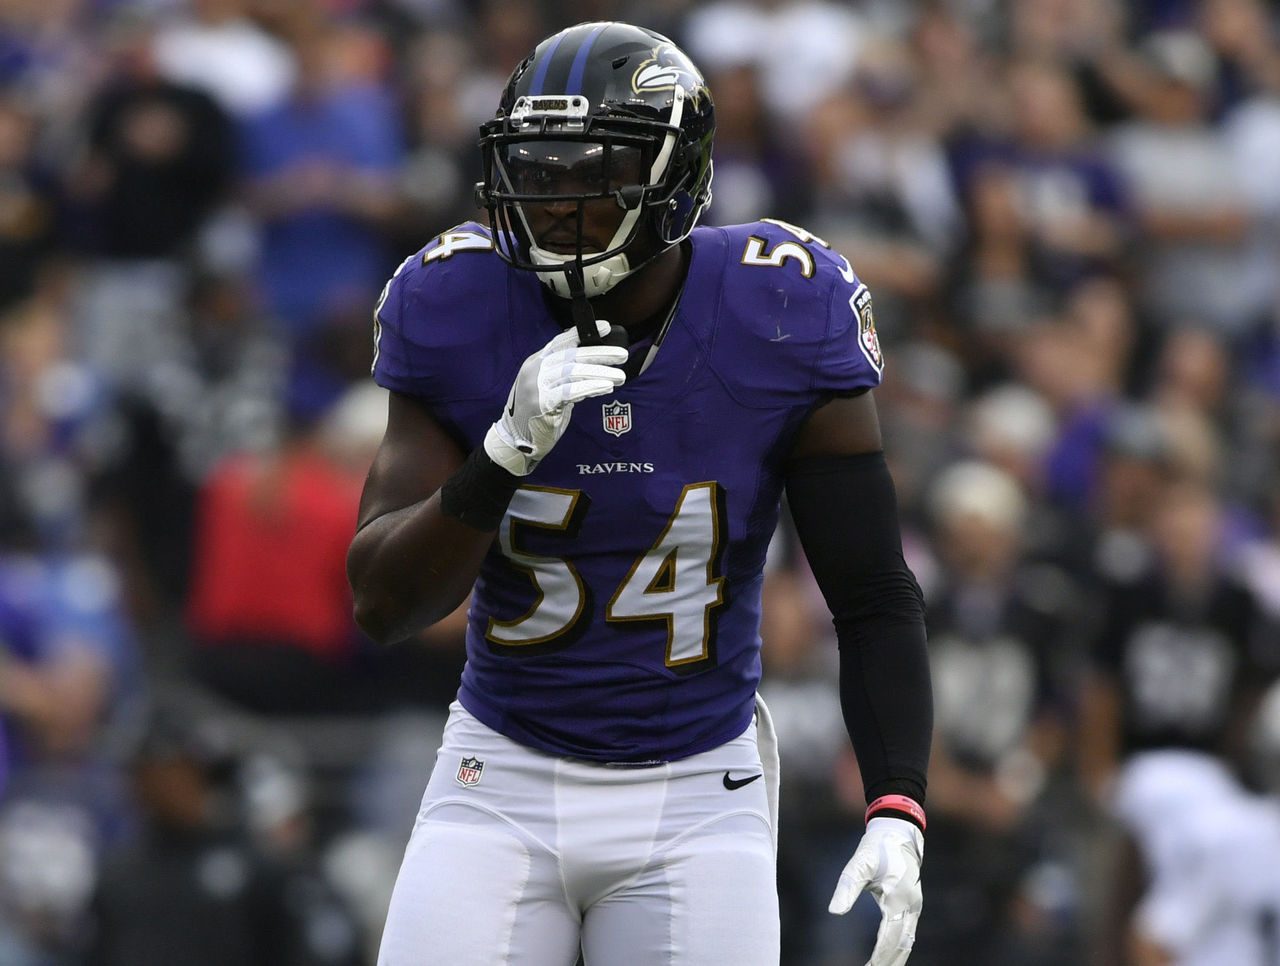 Report: Zach Orr to visit Lions amid possible return from early retirement